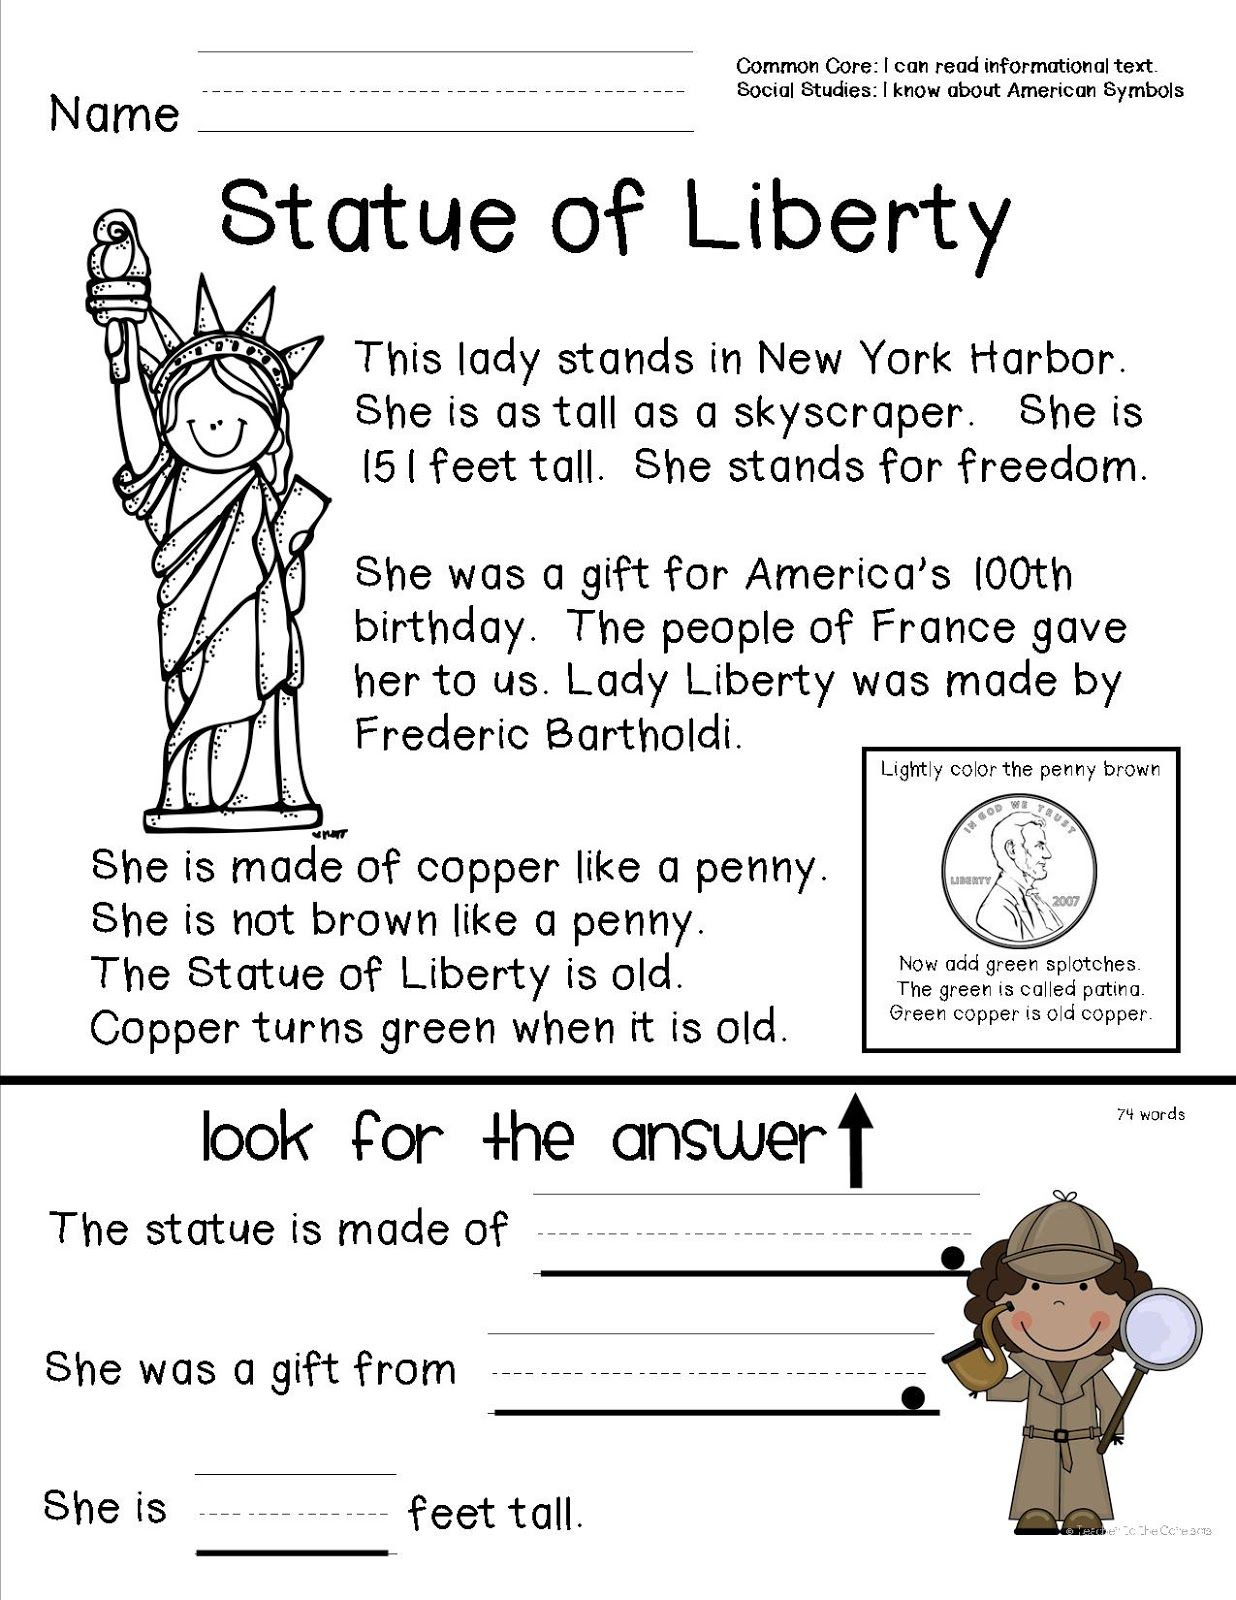 Free Worksheet 2nd Grade Reading Comprehension Worksheets Pdf 17 best images about activities for my statue of liberty book on pinterest reading games and word problems